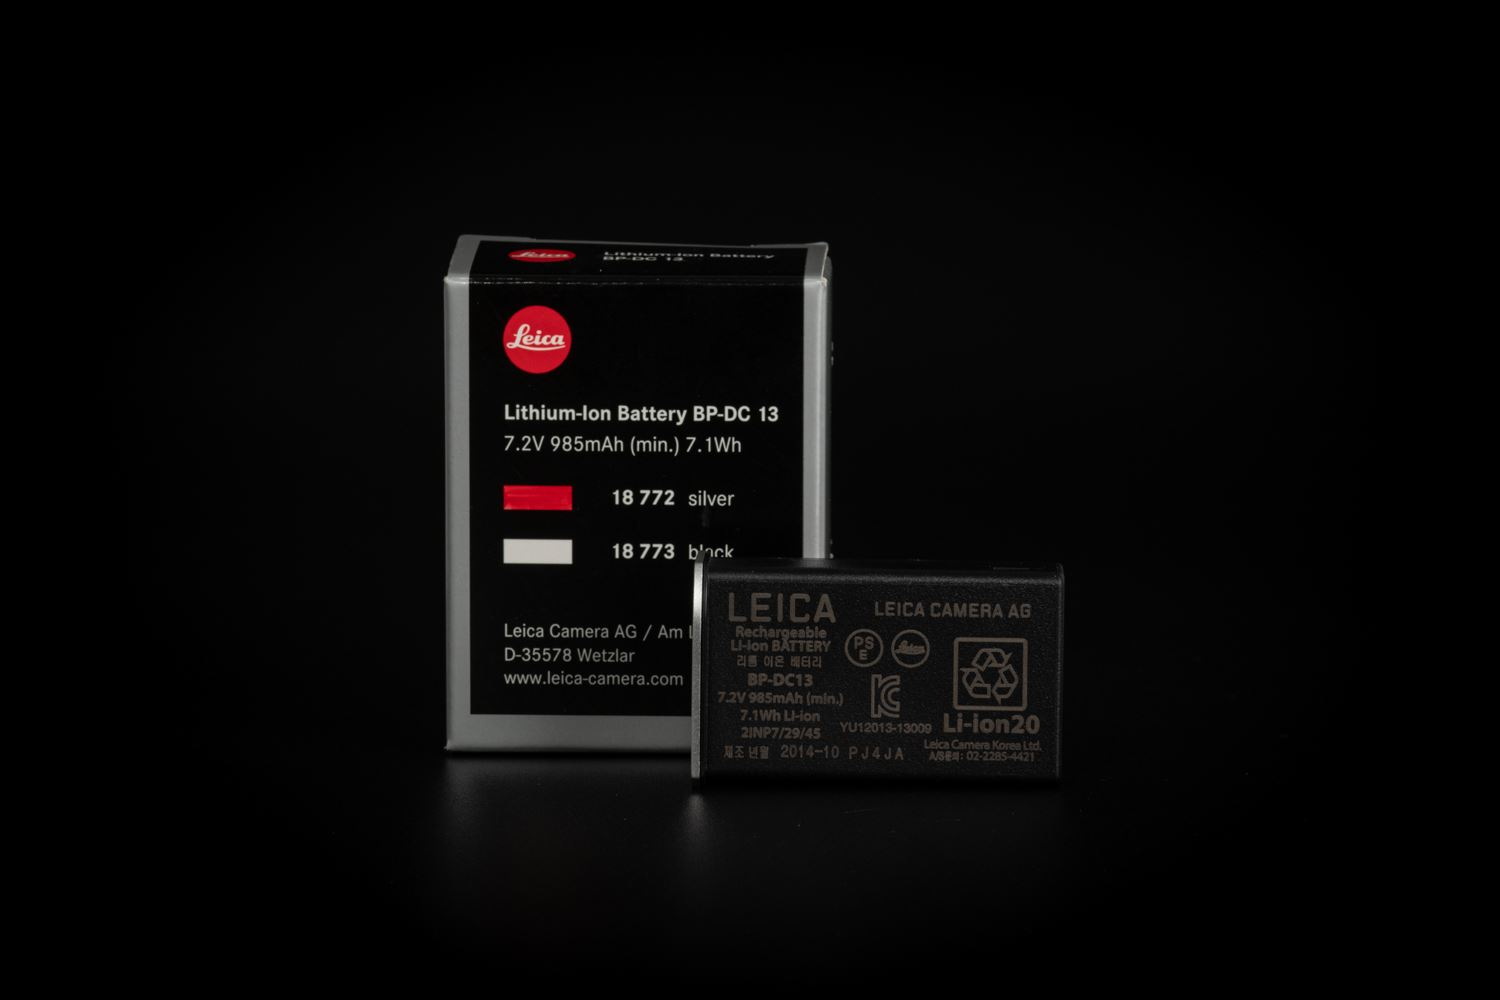 Picture of leica Lithium-Ion-Battery BP-DC13, silver